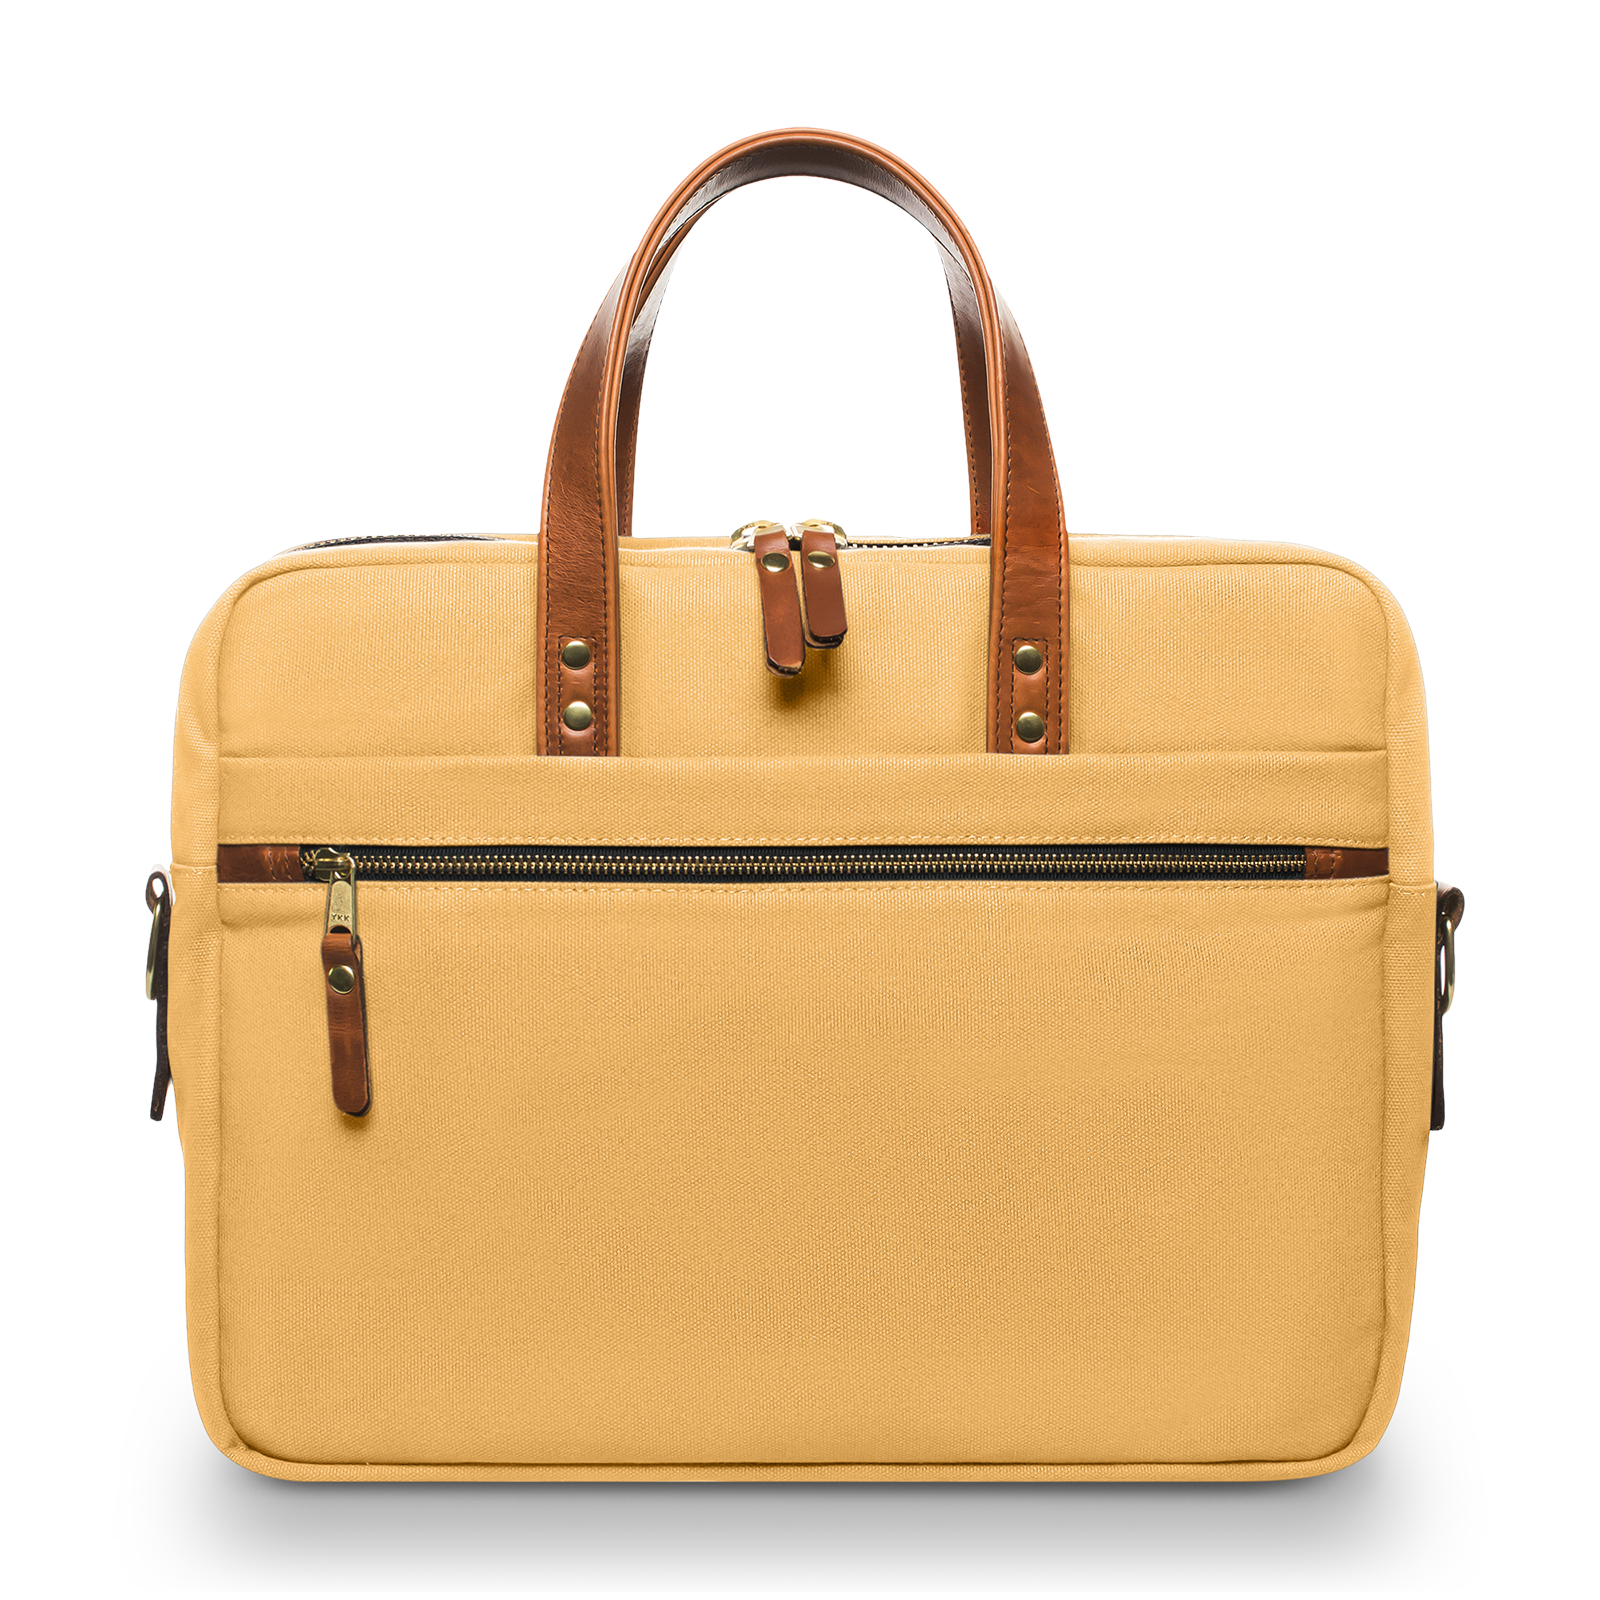 Briefcase product image